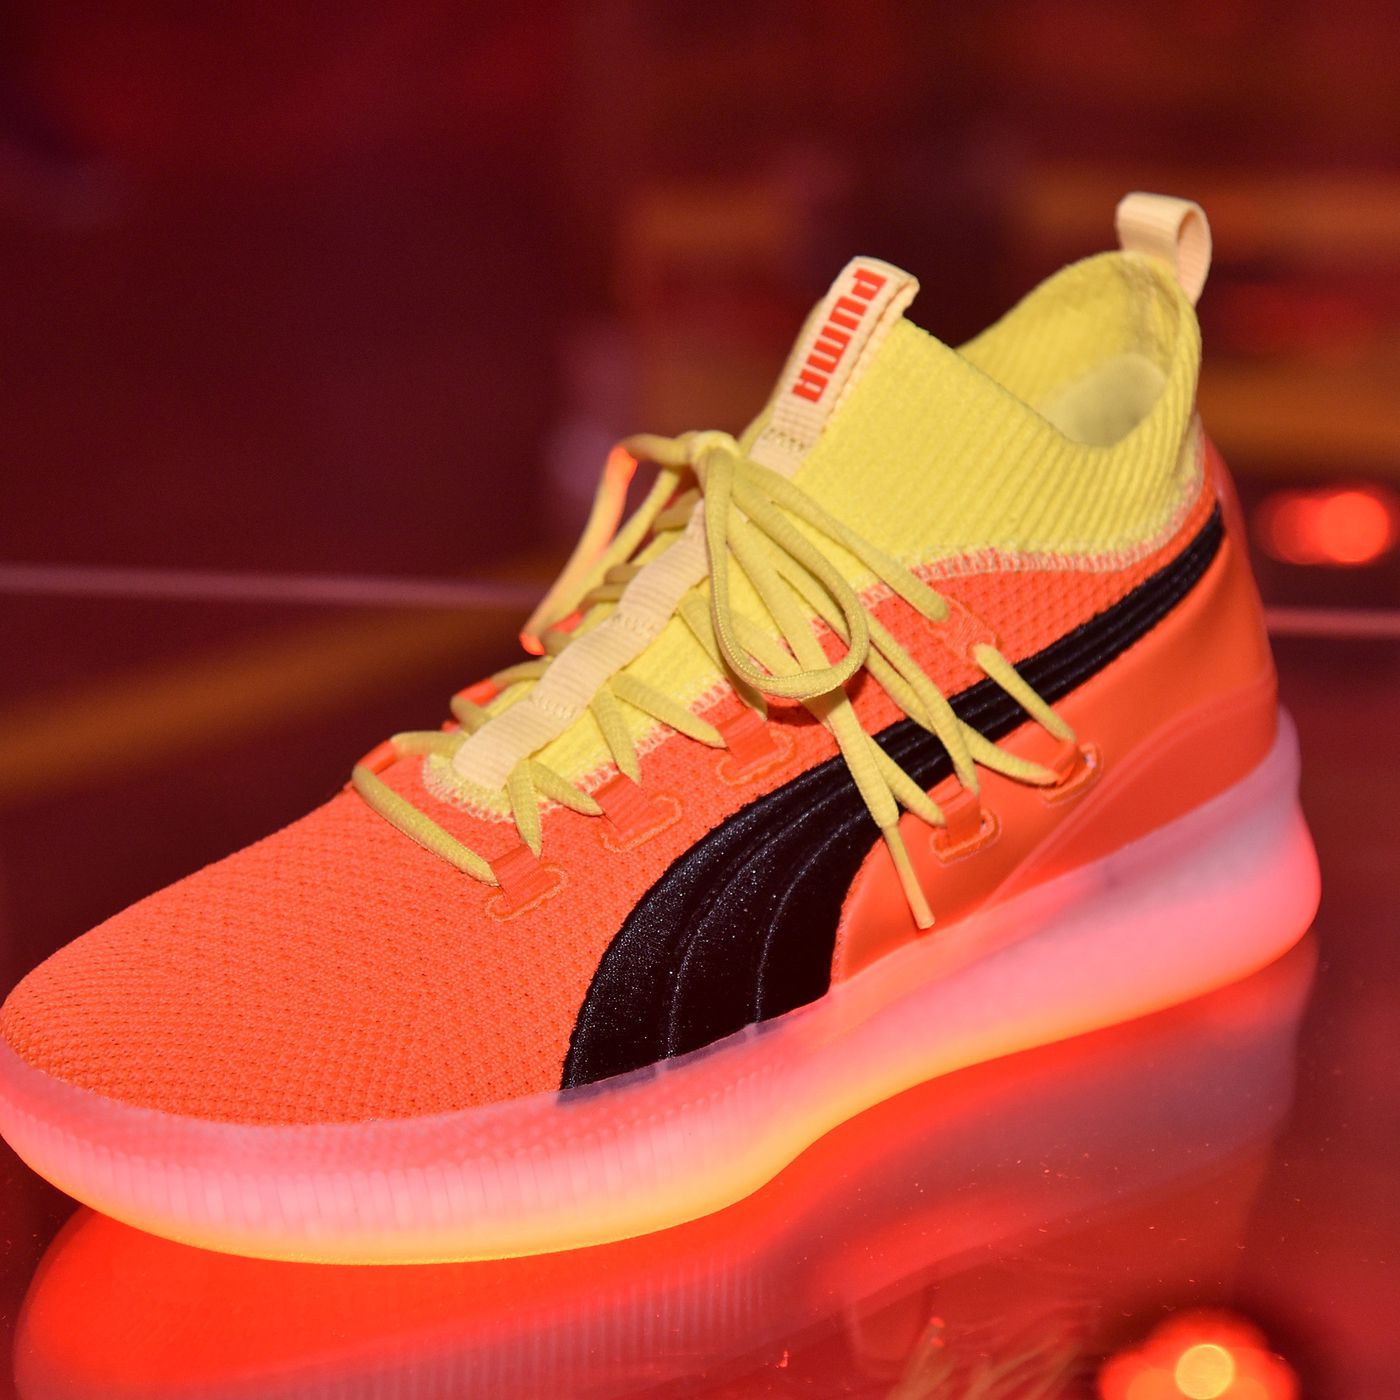 bd47cde28c7fc7 Puma s Clyde Court Disrupt basketball shoe drops just in time for the new  NBA season - SBNation.com